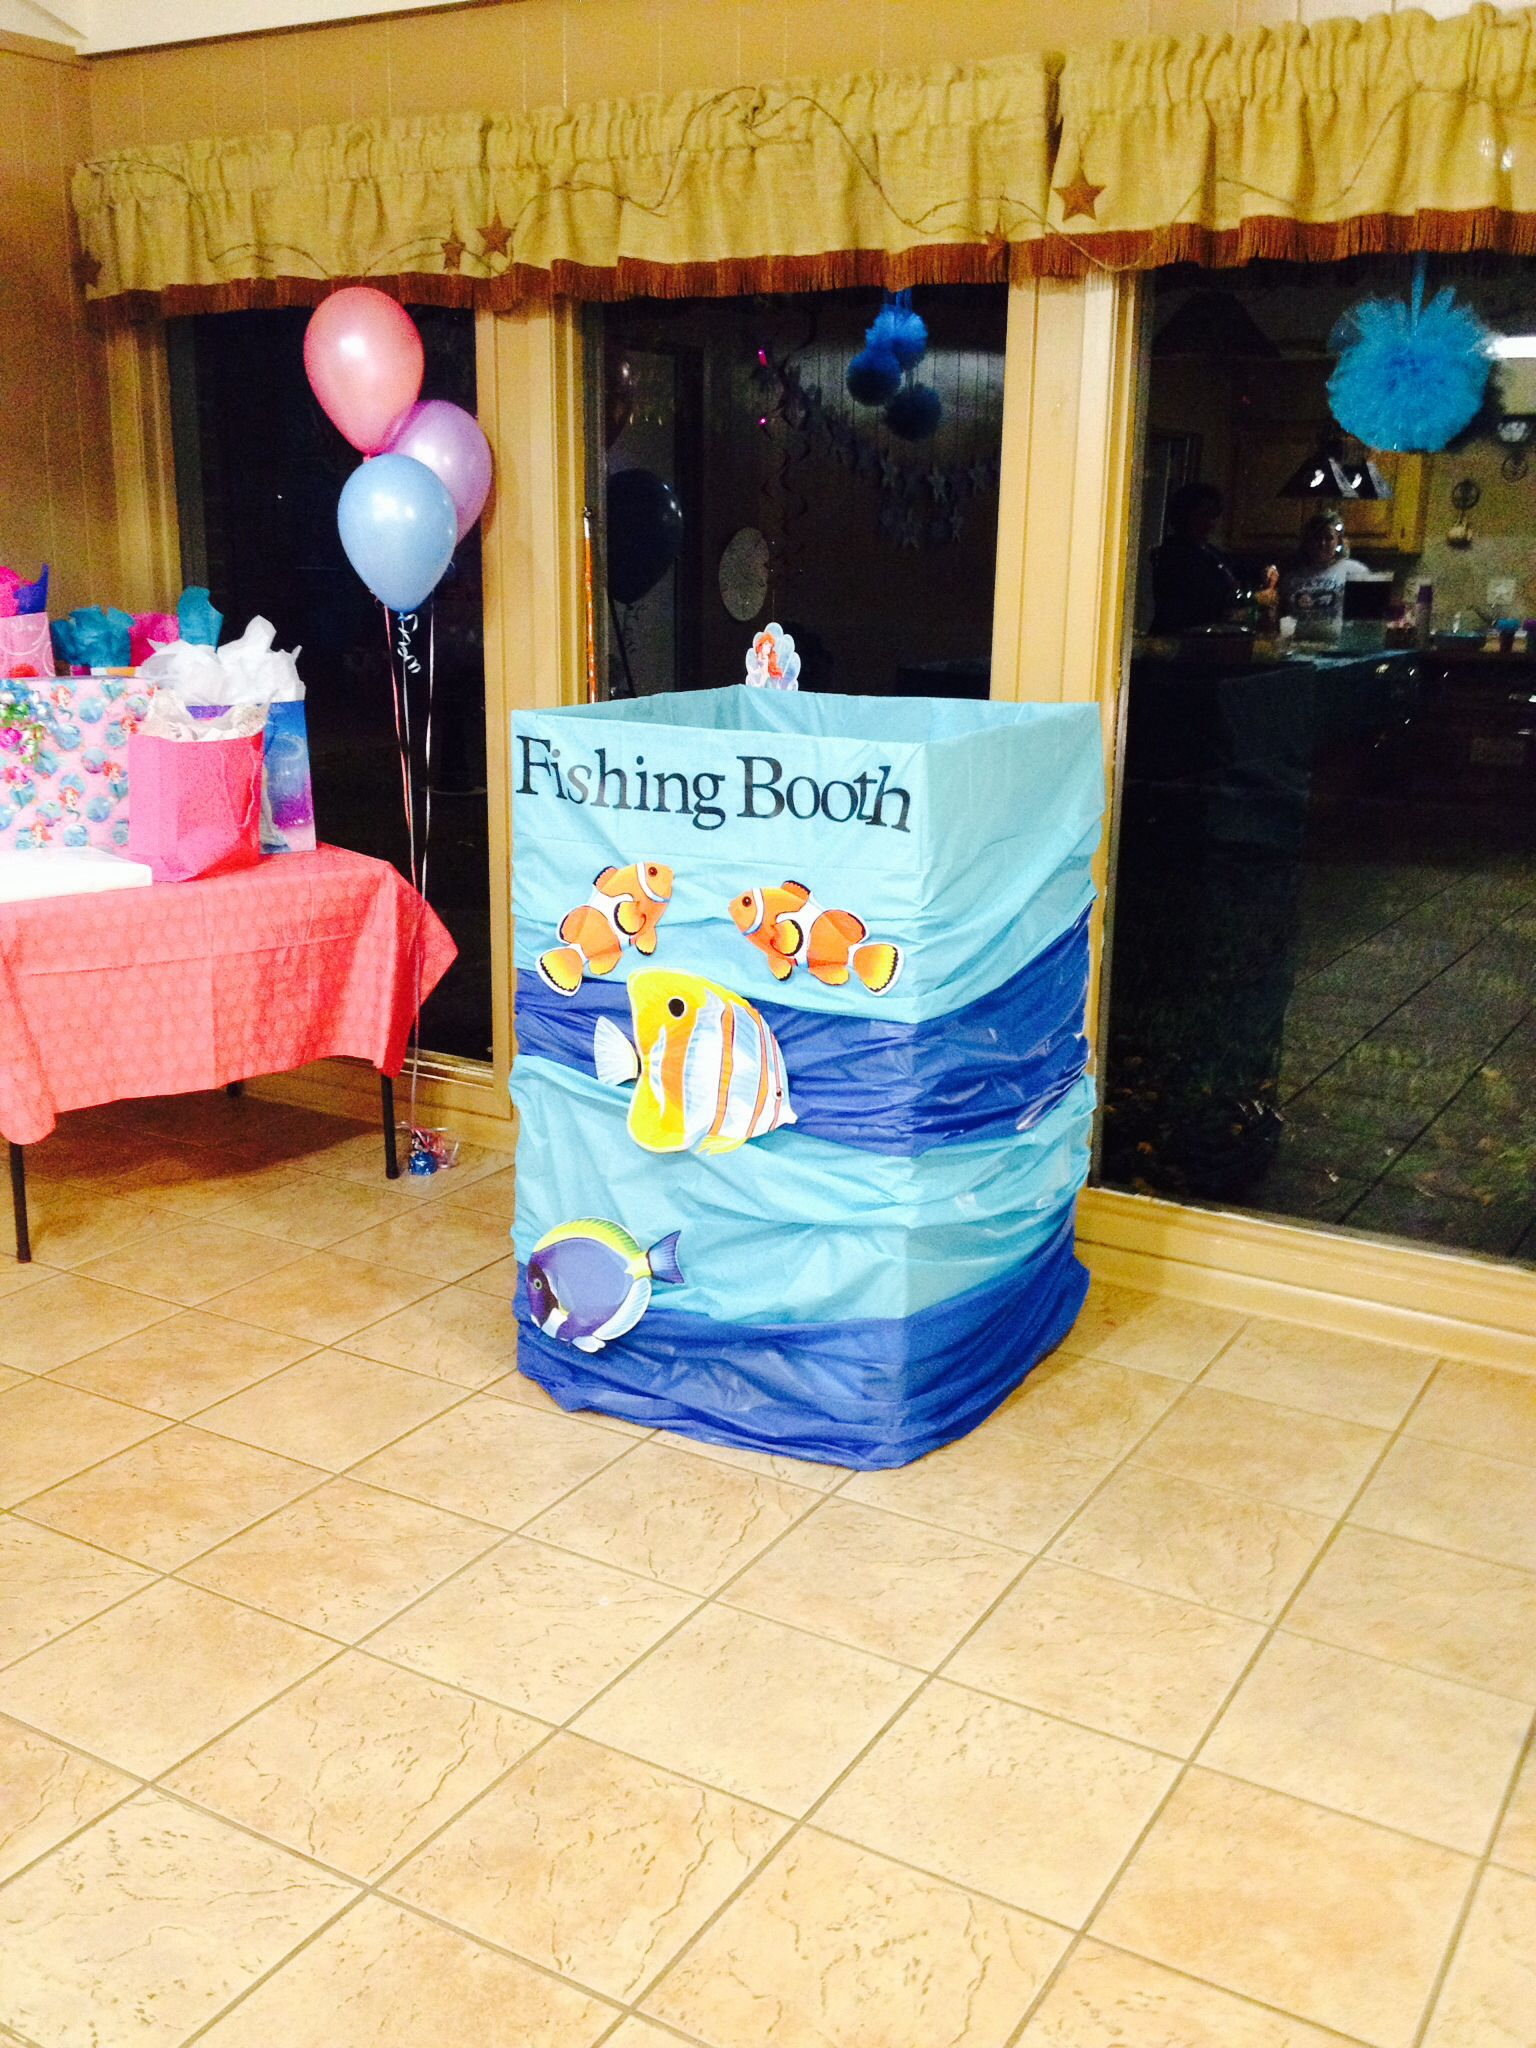 fishing booth | Stuff I've made with styrofoam... | Pinterest ...